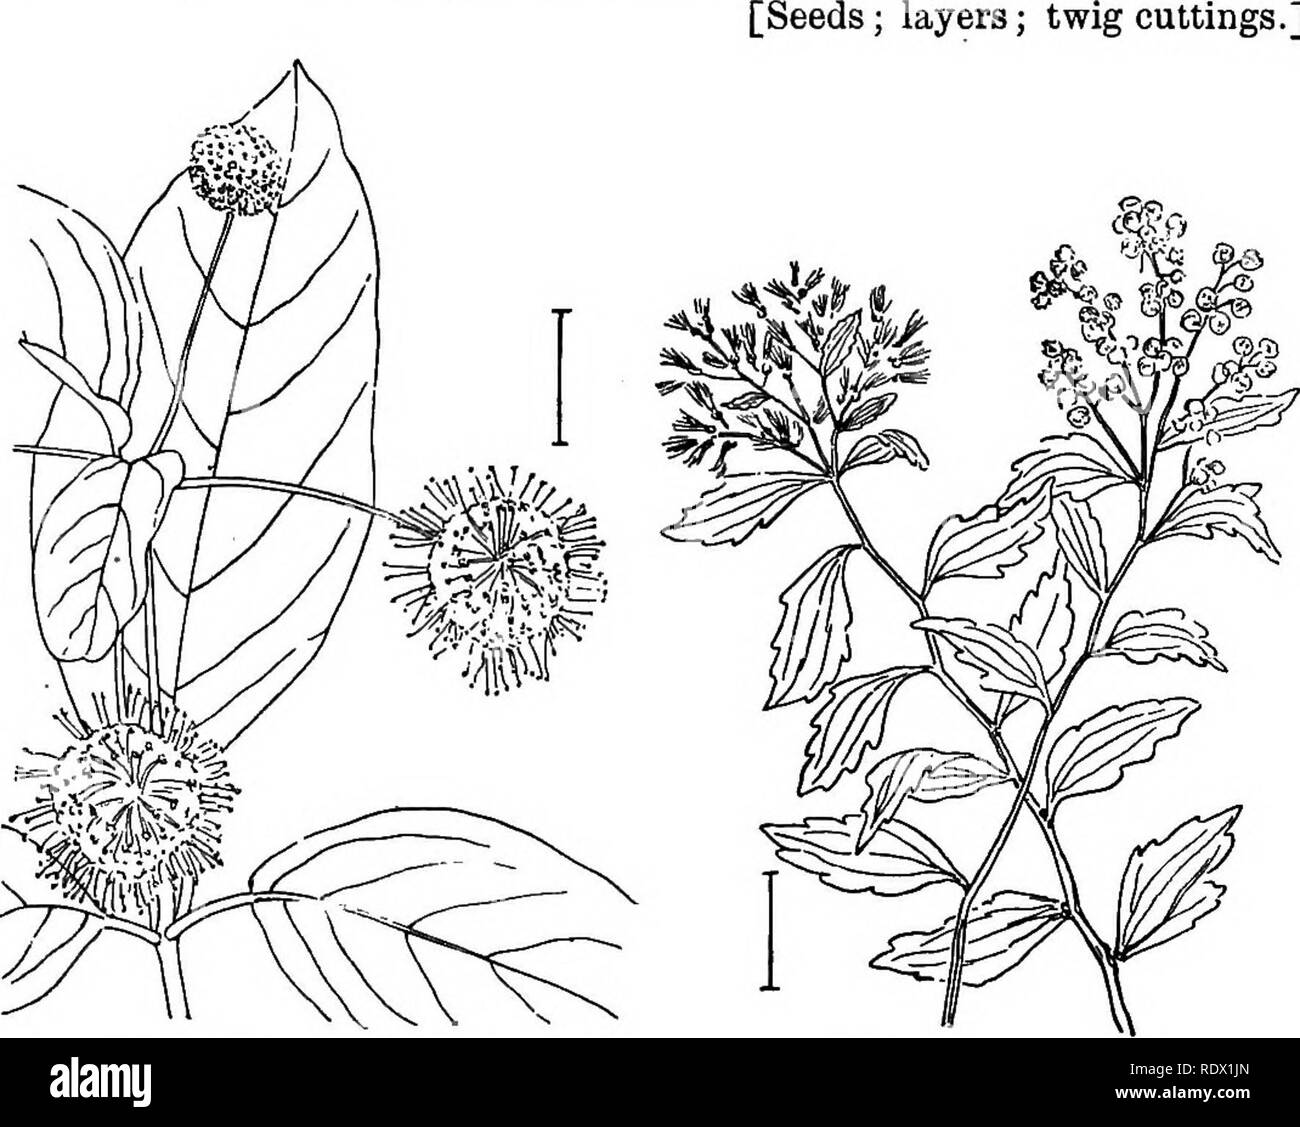 . Ornamental shrubs of the United States (hardy, cultivated). Shrubs. CEPHALANTHUS 241 border (salver- or bell-shaped) of 6 or more lobes. The Gardenias proper have a 1-celled pod. They are hardy only in the South. Cape 'Jasmine' (399) —Gardenia jasminoides—has a calyx with 5 slen- der teeth and distinct ridges along the sides of the united portion. The corolla, in the usually cultivated variety, is fully double with many white waxy lobes. There are many varieties under many names, differing in the width of the leaves and the height and habit of plant growth. HaVdy to the Carolinas and extensi - Stock Image